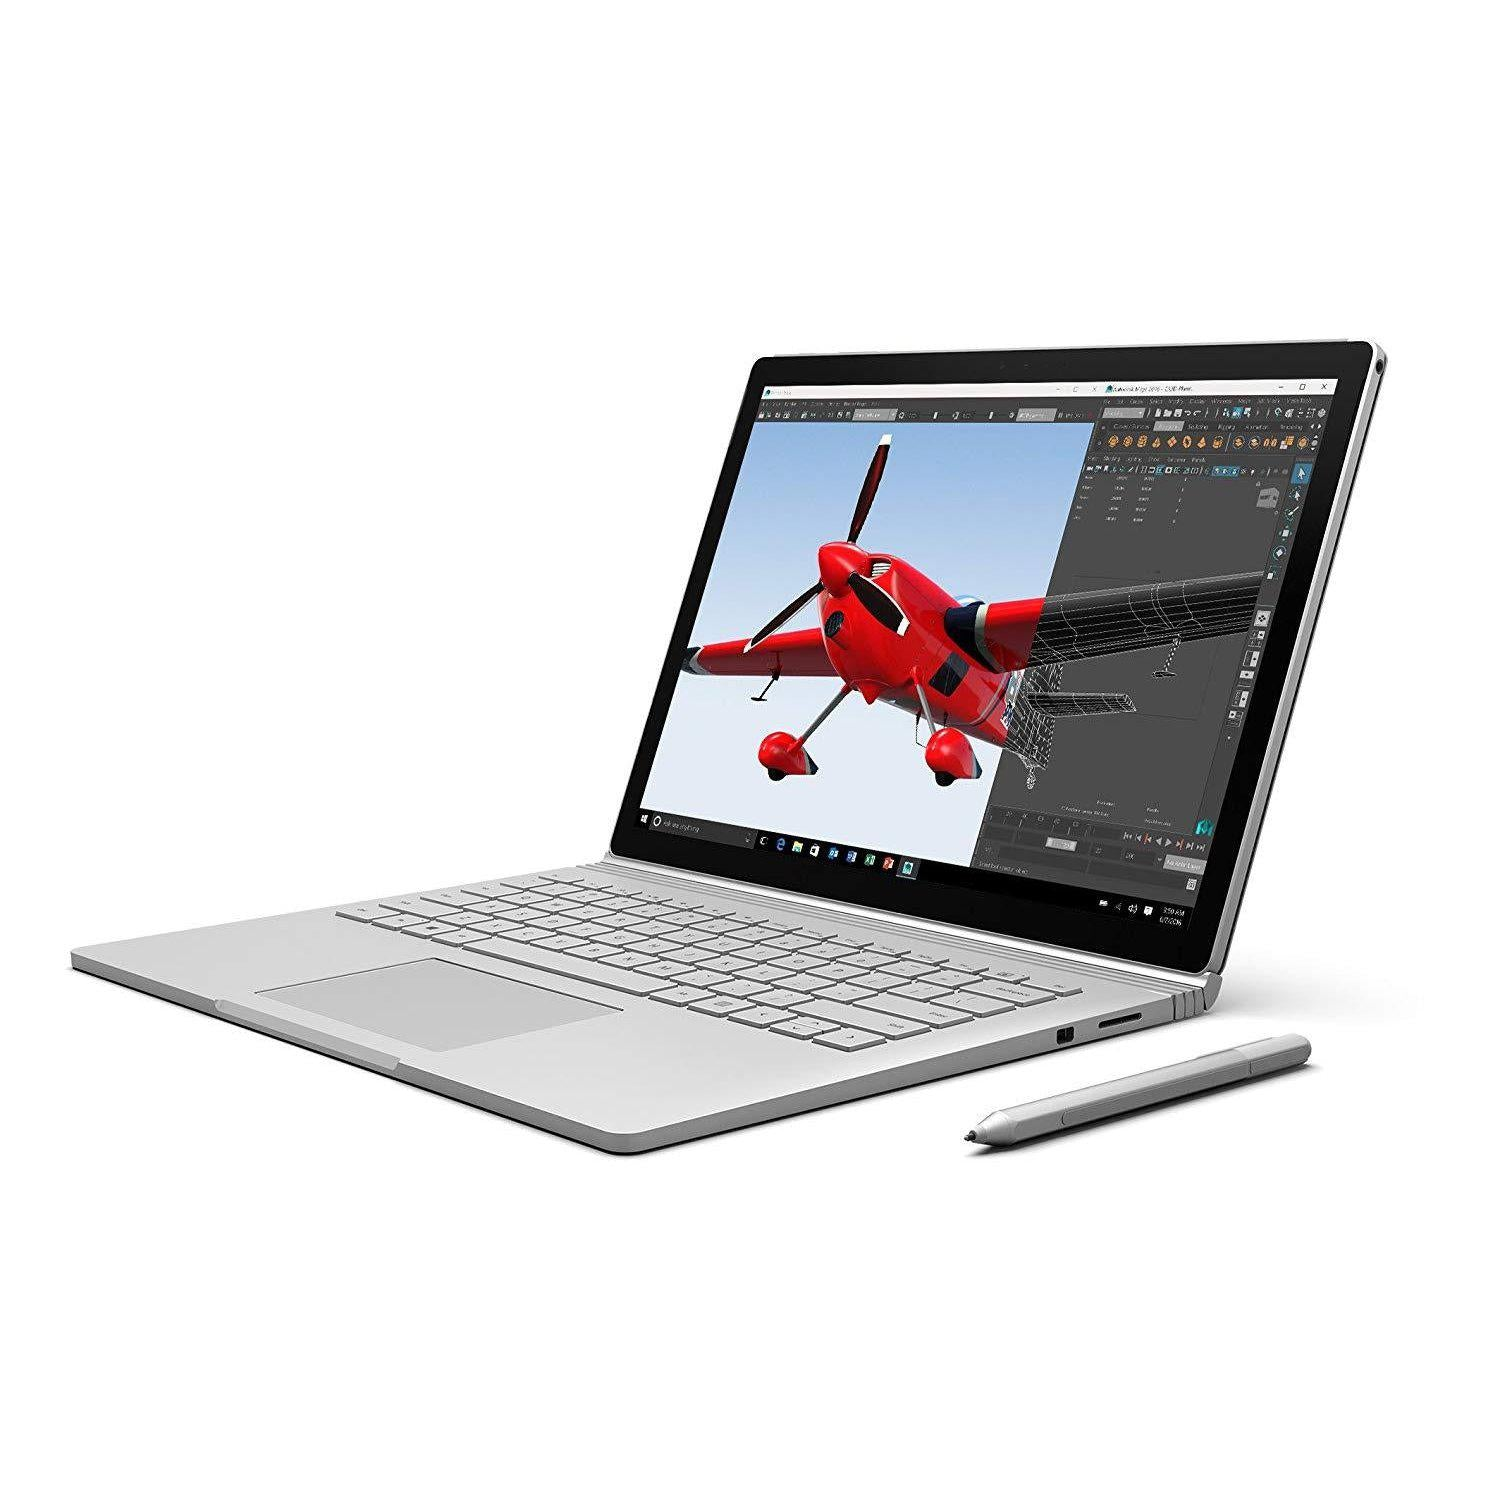 "Microsoft Surface Book Intel 6th Gen Core I5 8GB 256GB 13.5"" 2 in 1 Laptop"